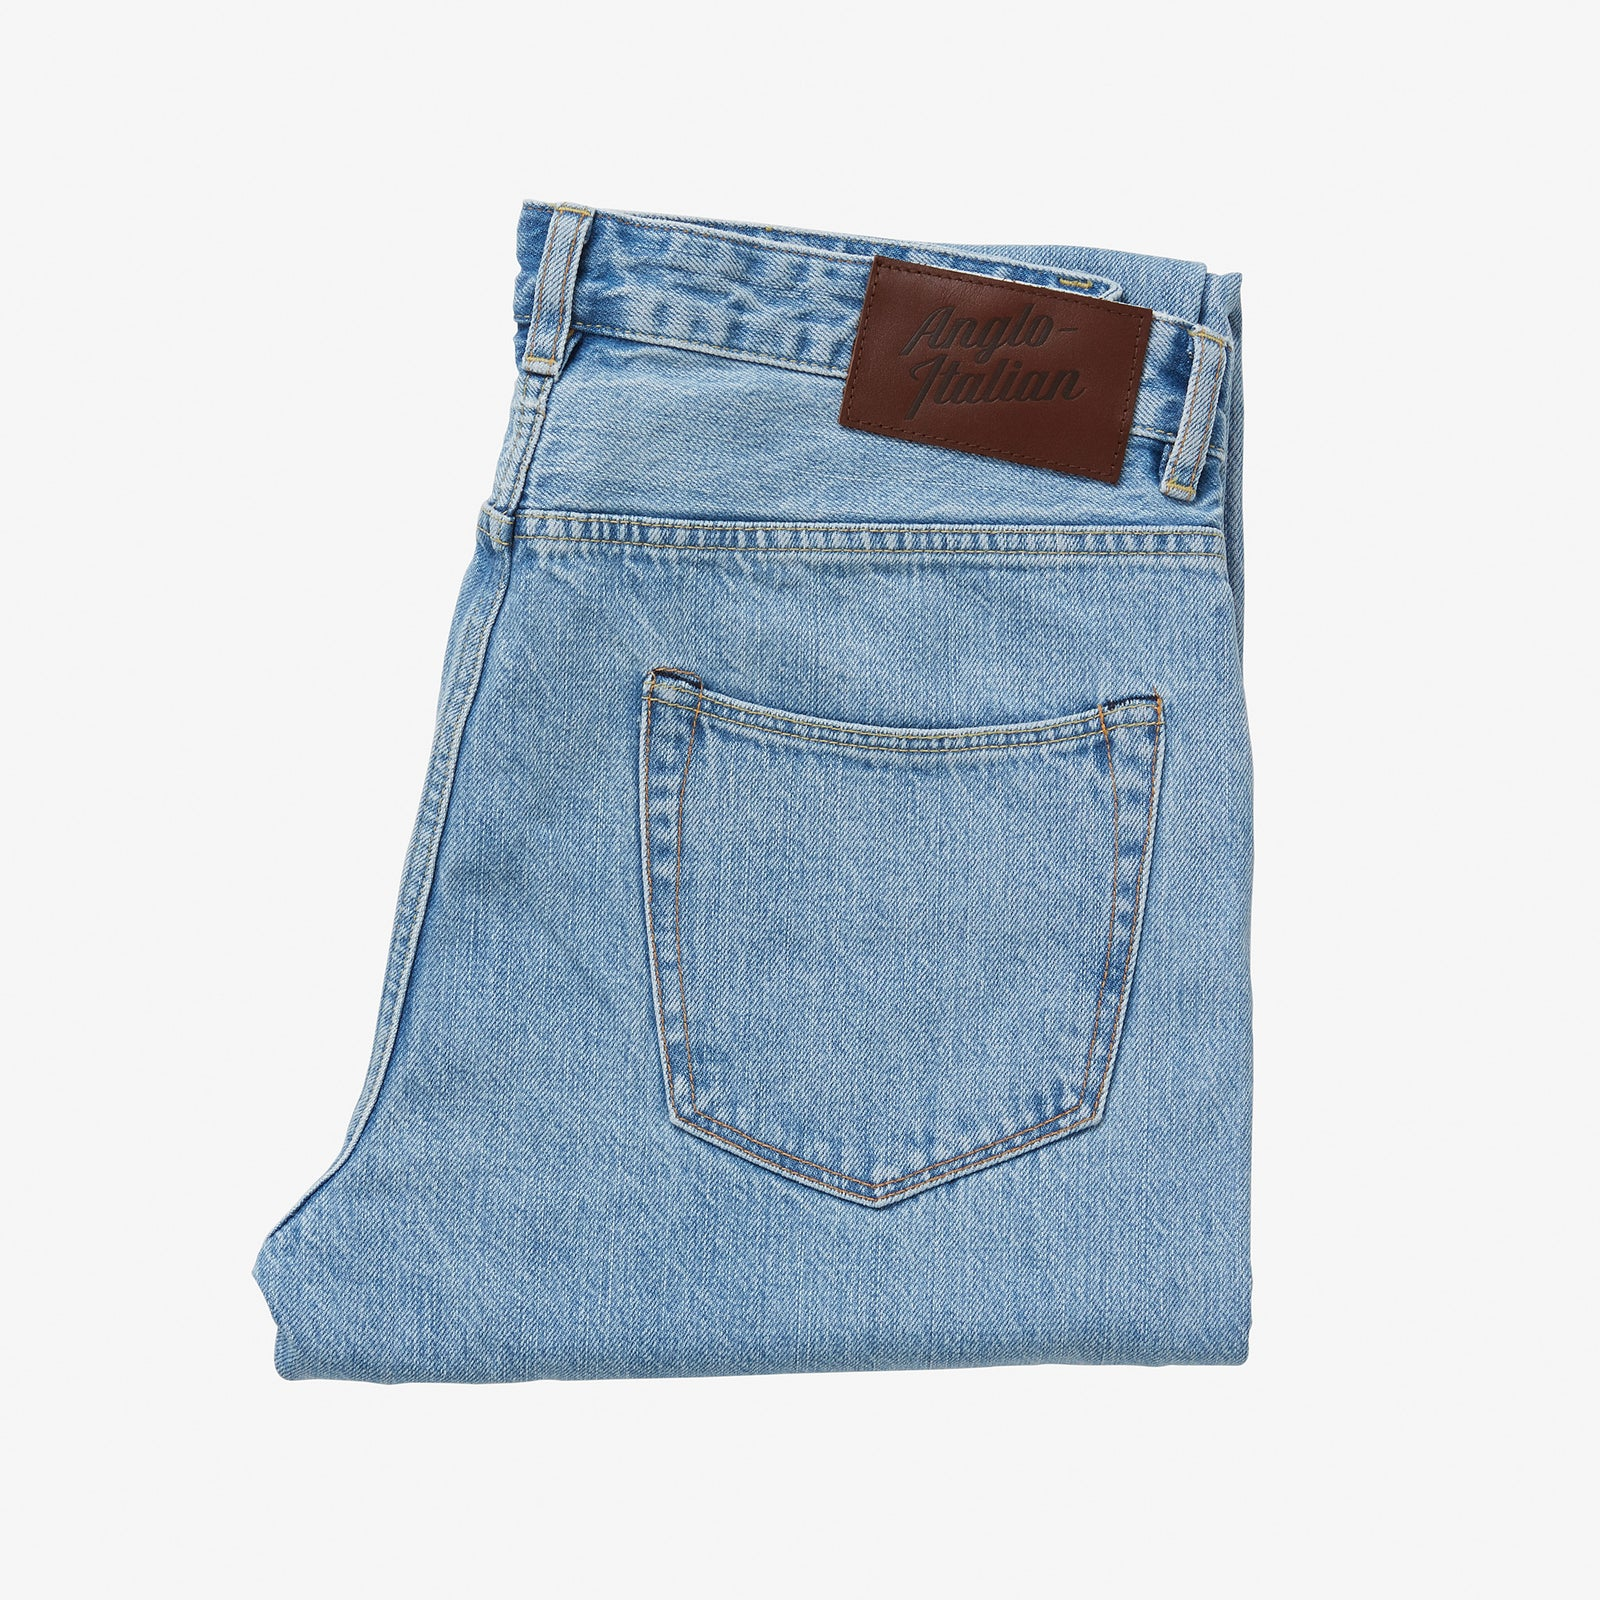 "AIC Denim Light Wash 30"" Inseam"